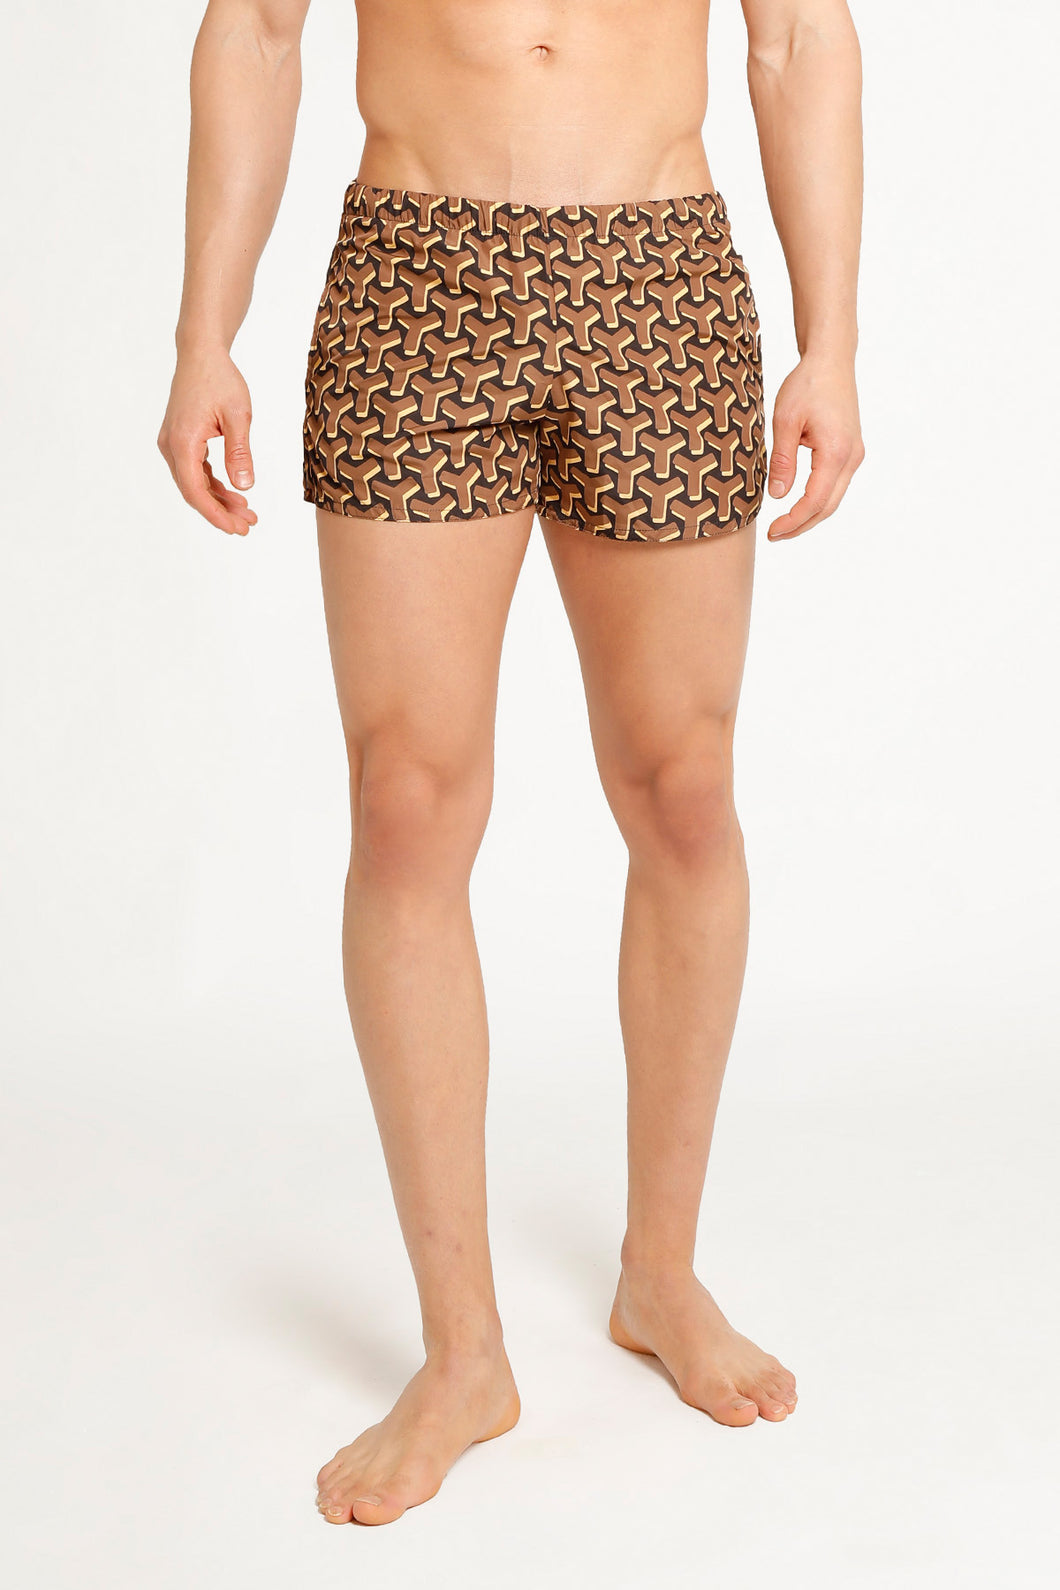 SHORTS MONOGRAM BROWN